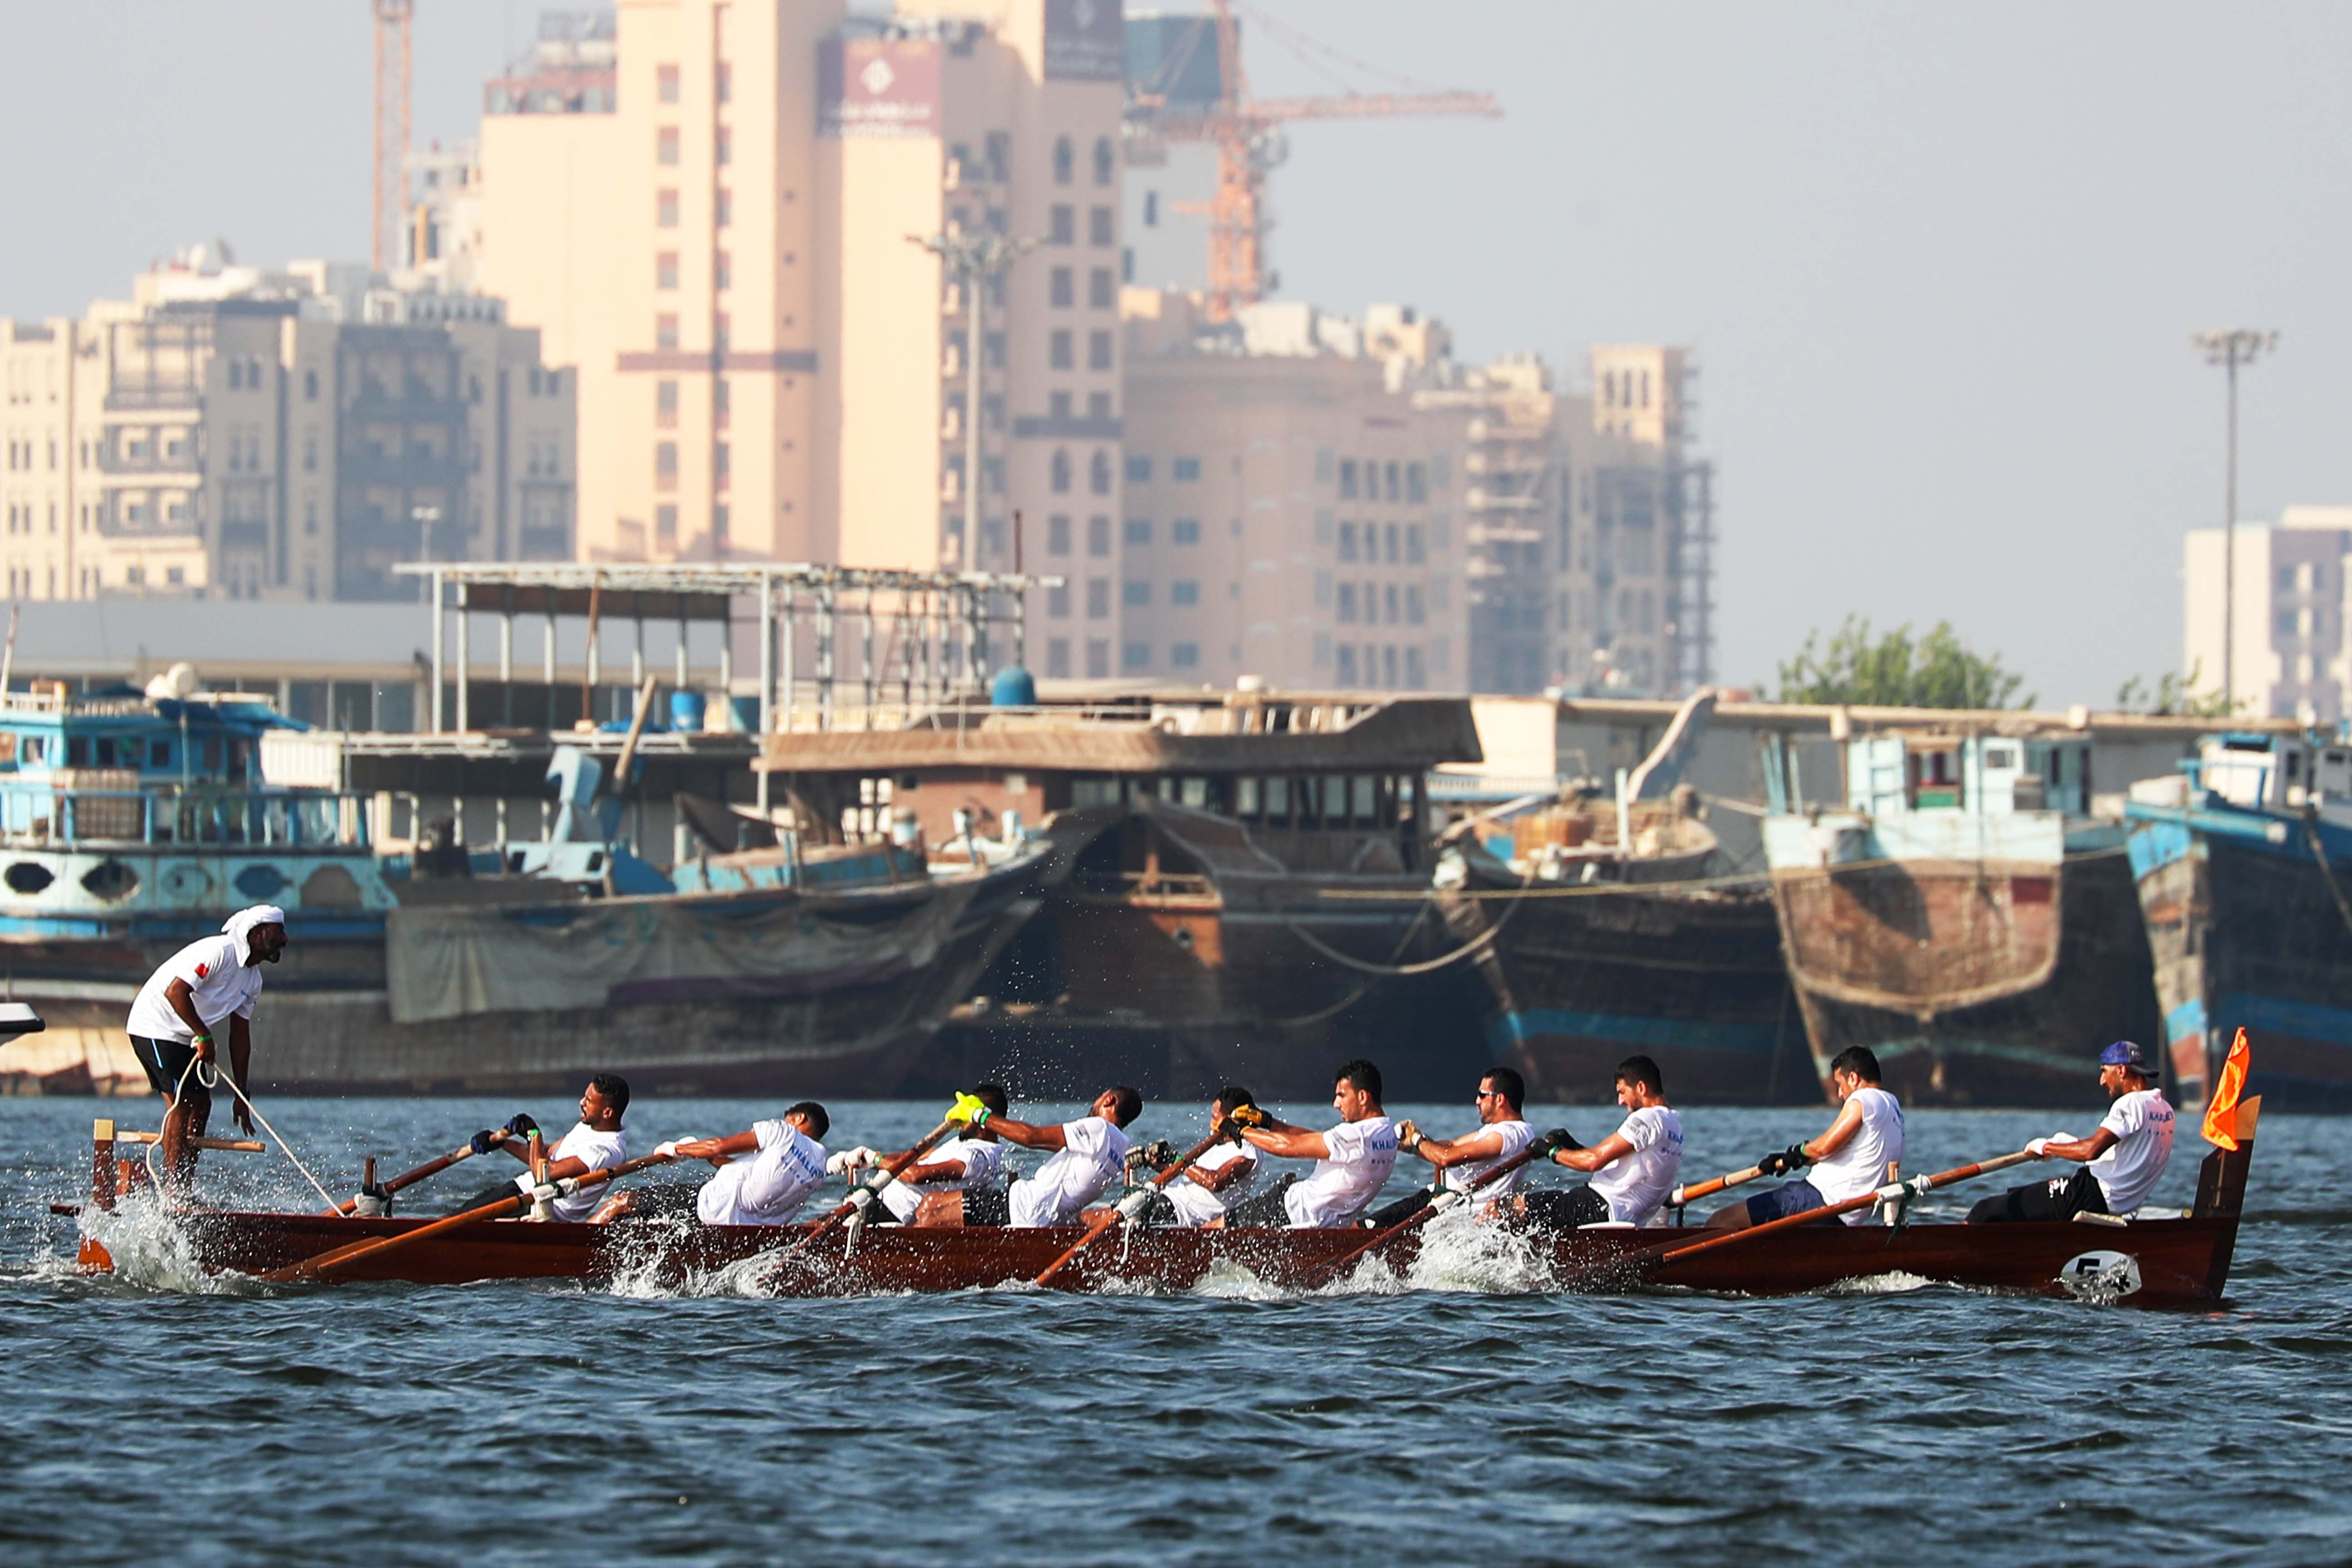 Dubai Traditional Rowing Race (30ft) Today